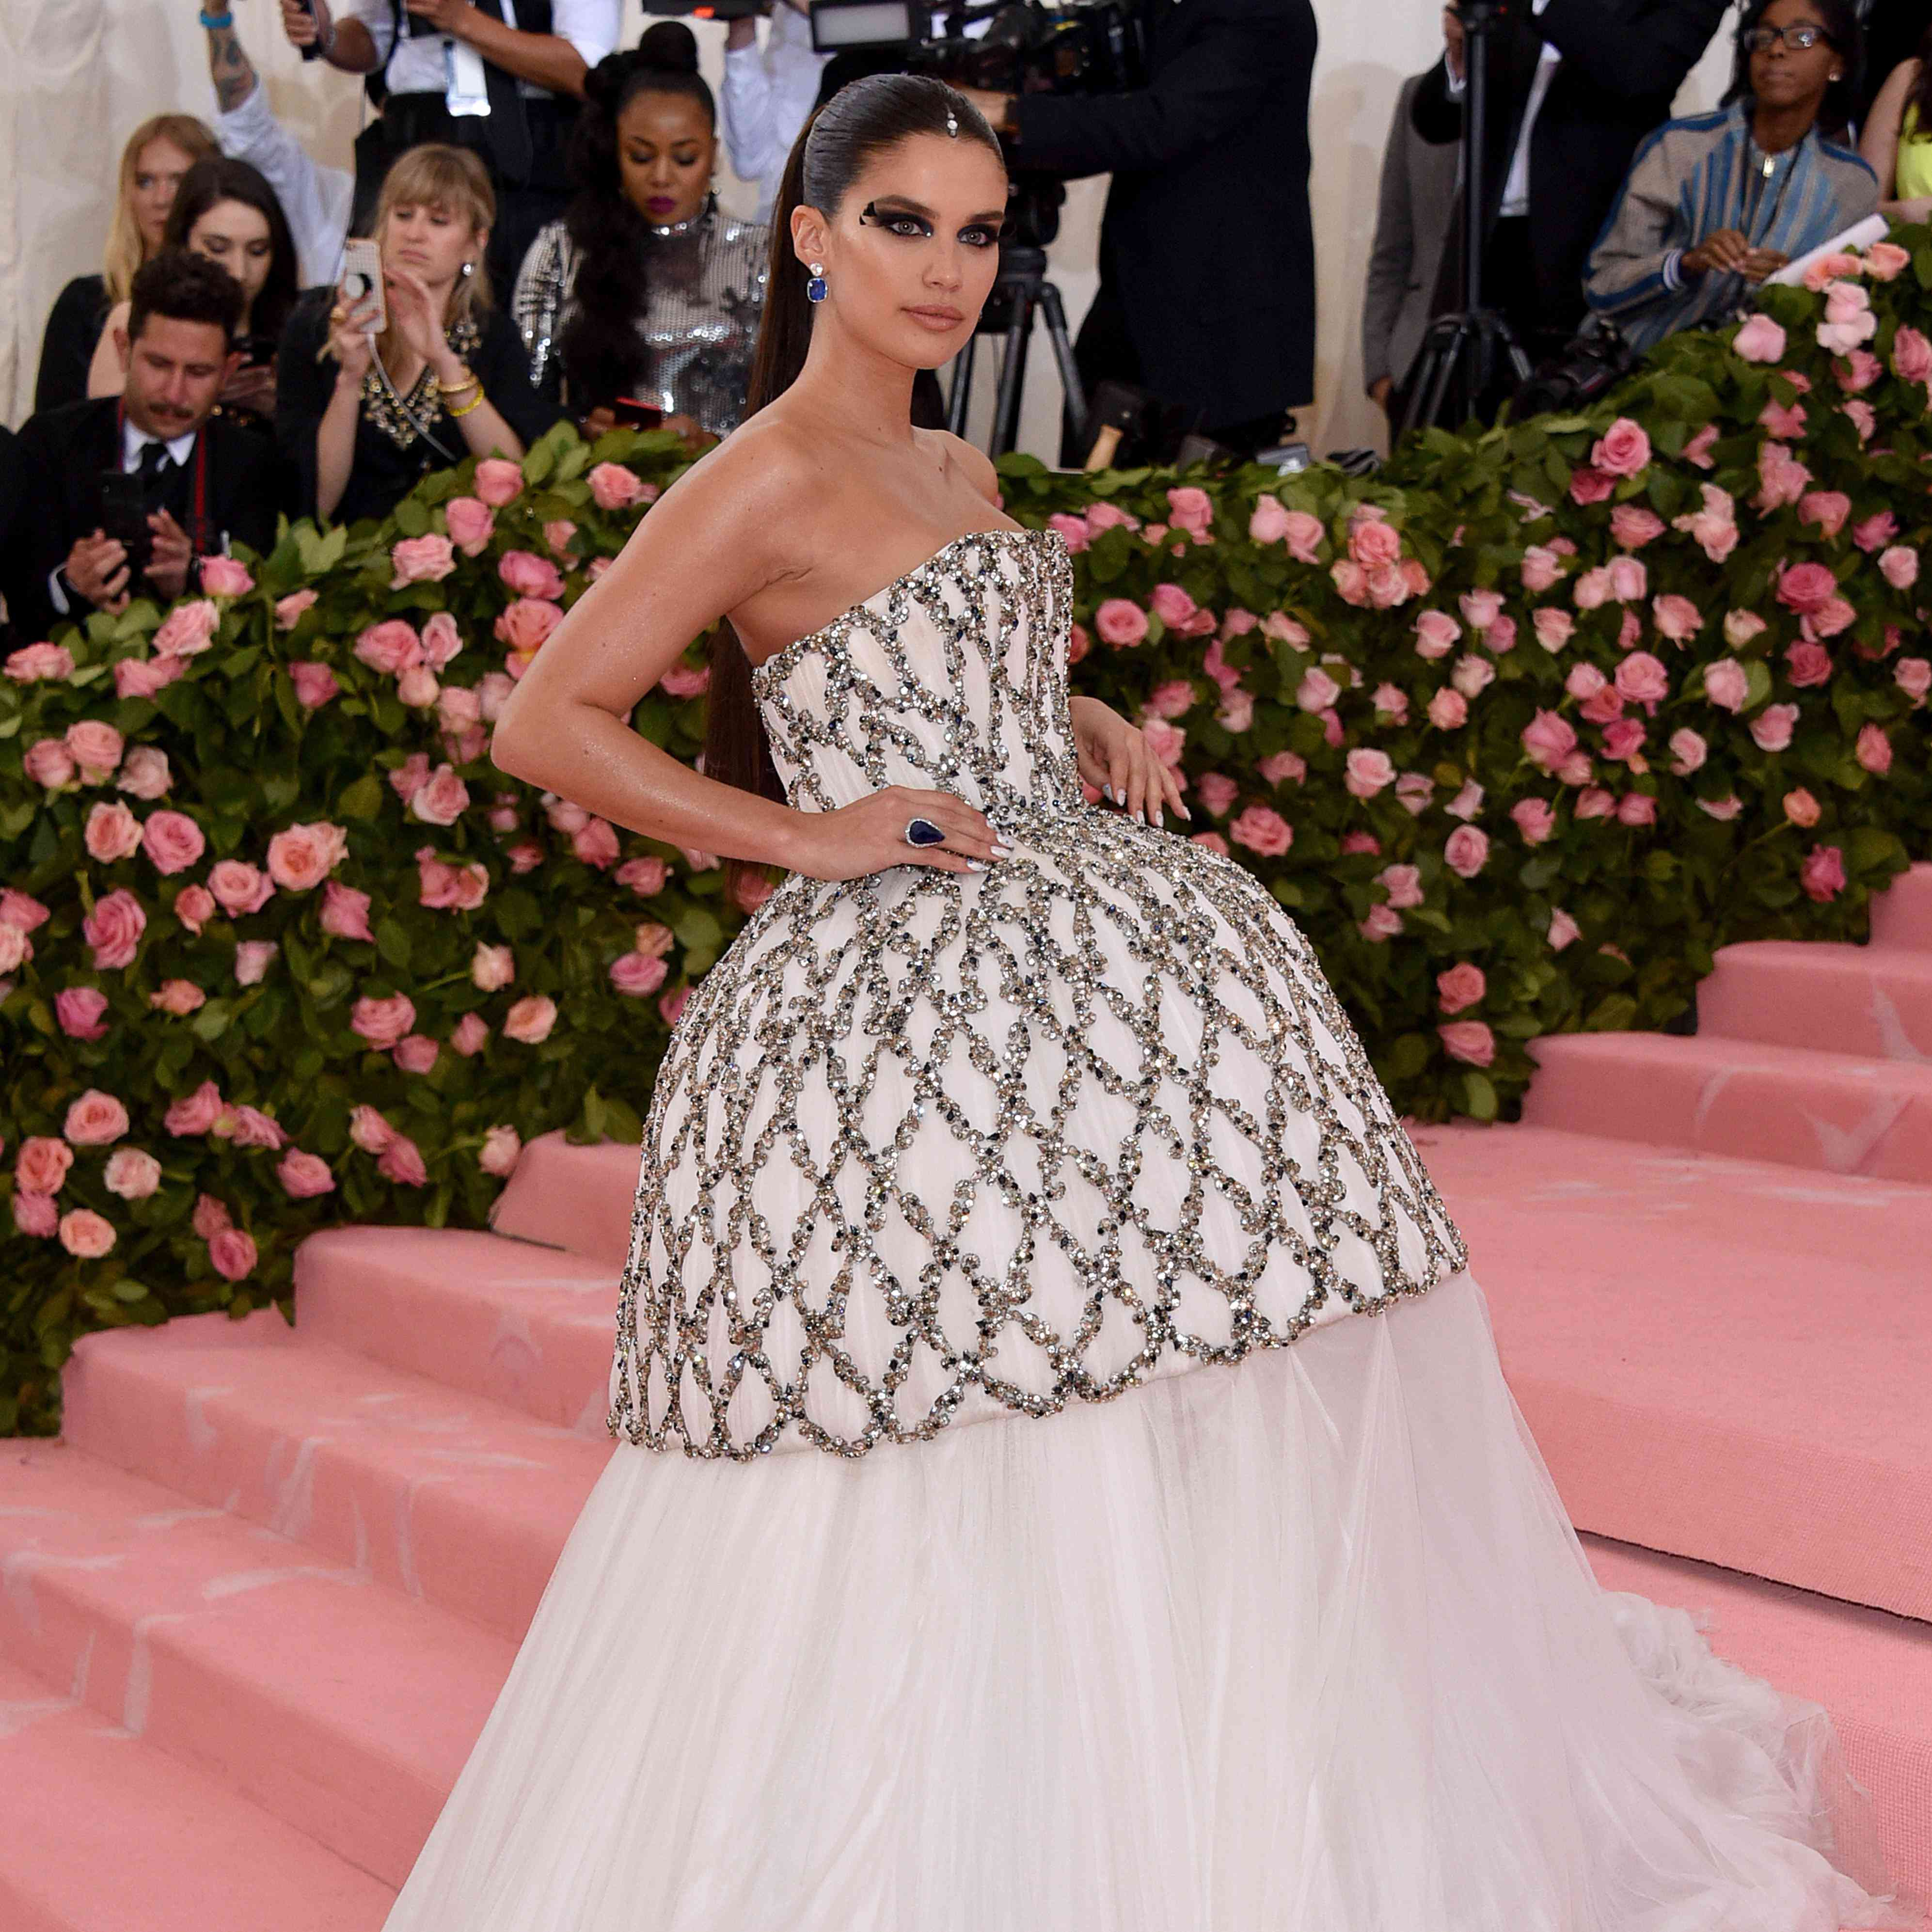 Met Gala 2019 Bridal Looks We Re Loving From Fashion S